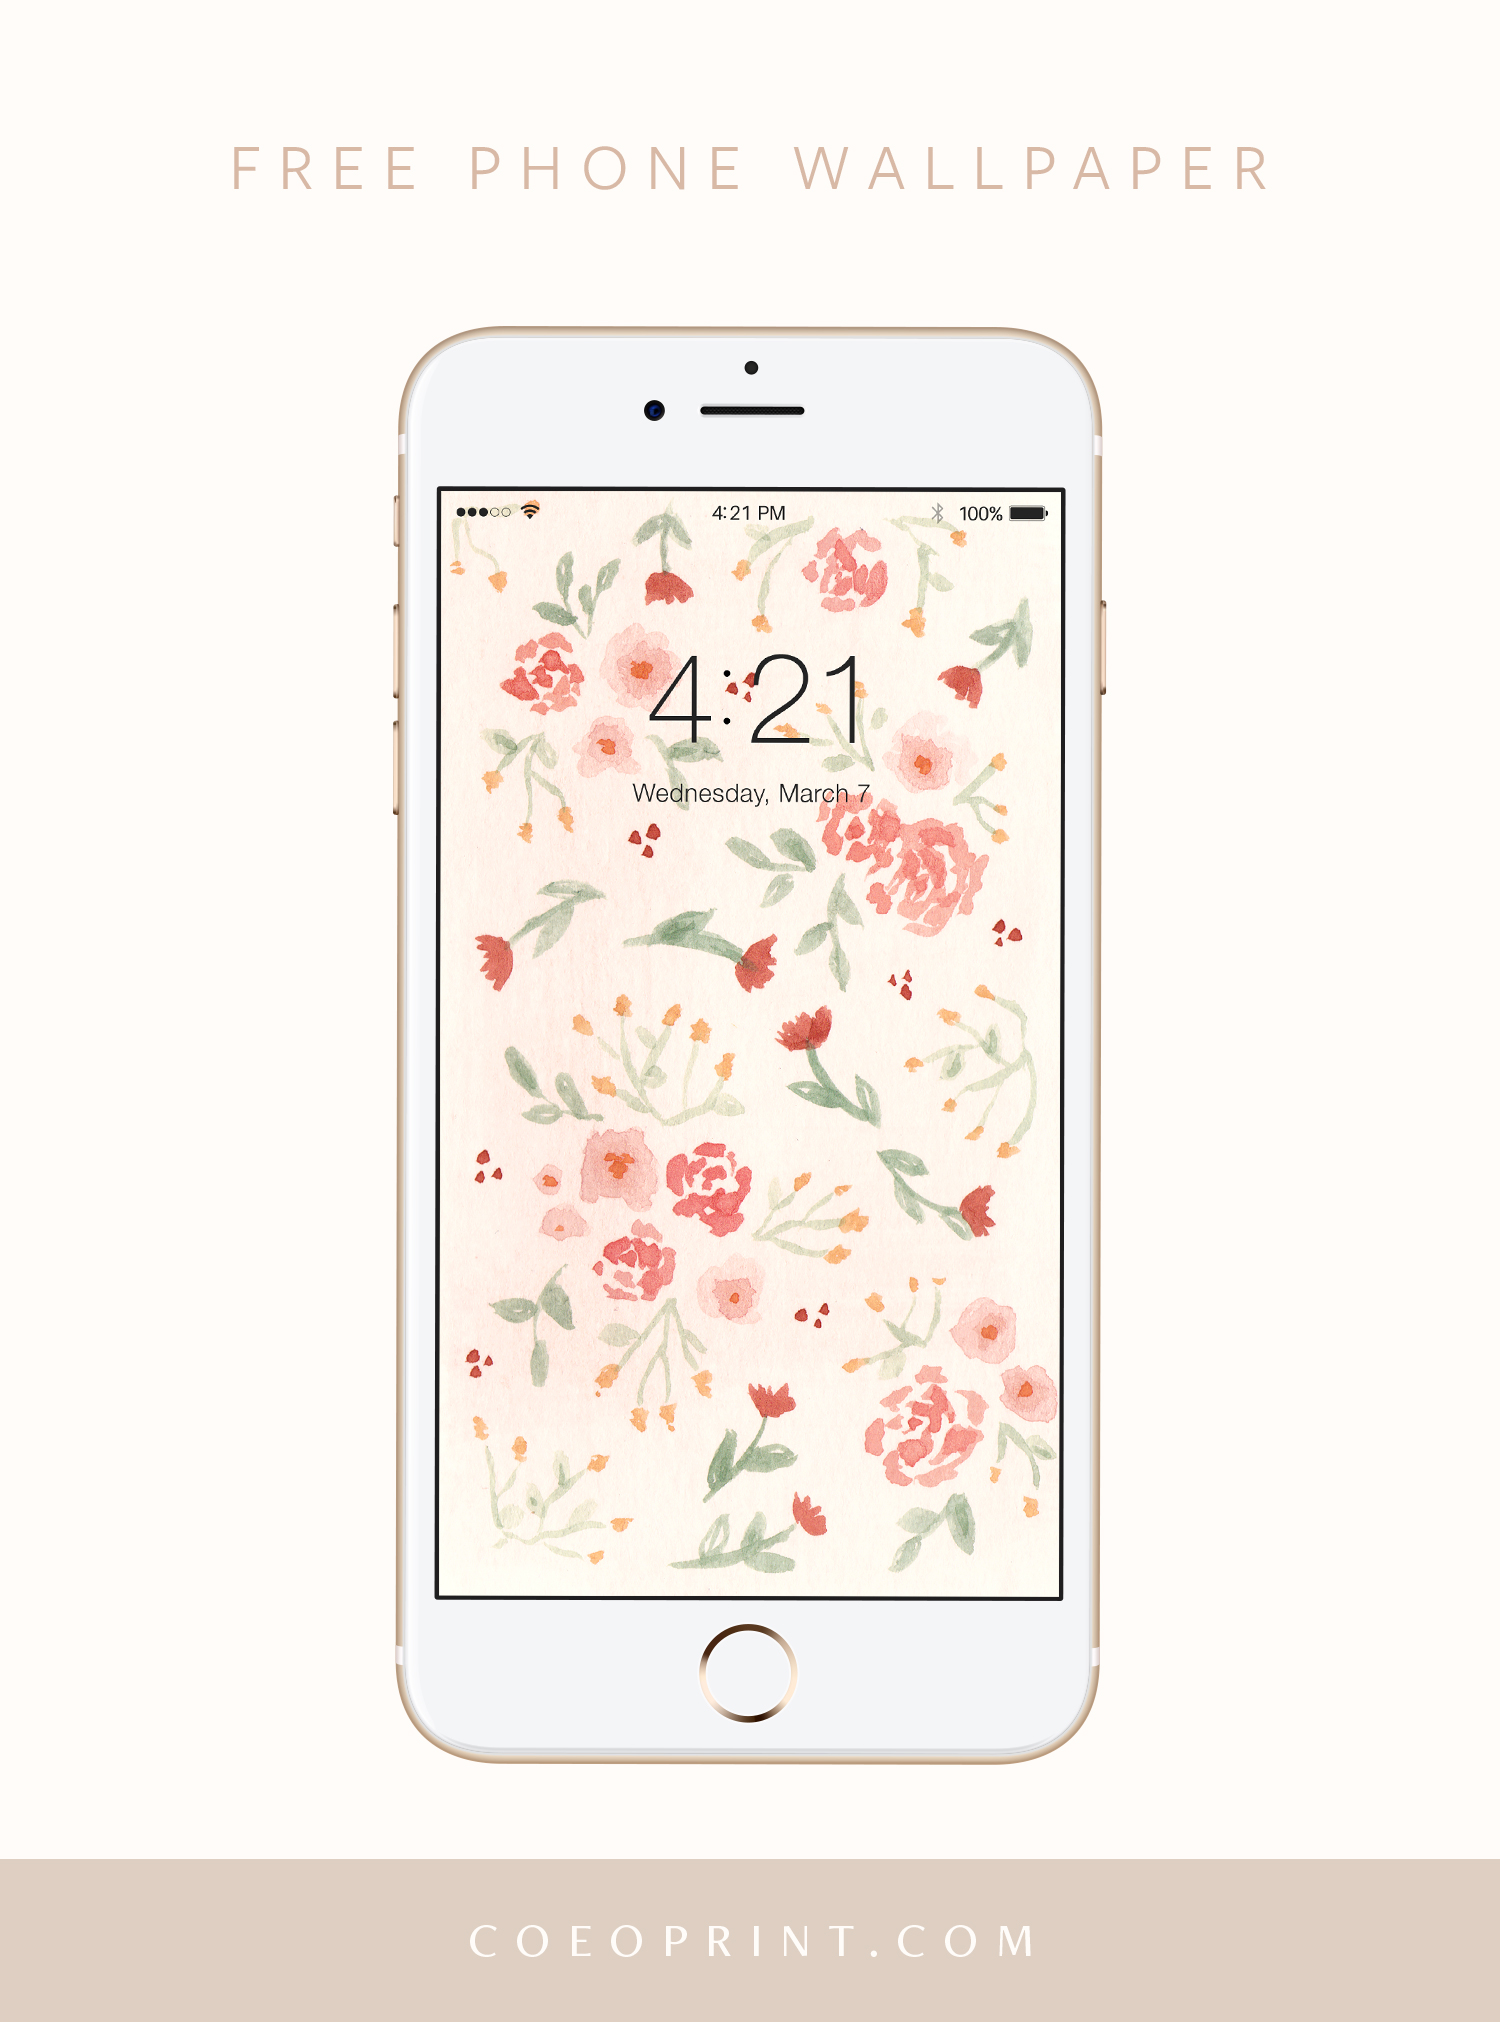 free-phone-wallpaper-download-watercolor-floral-pattern-2.jpg